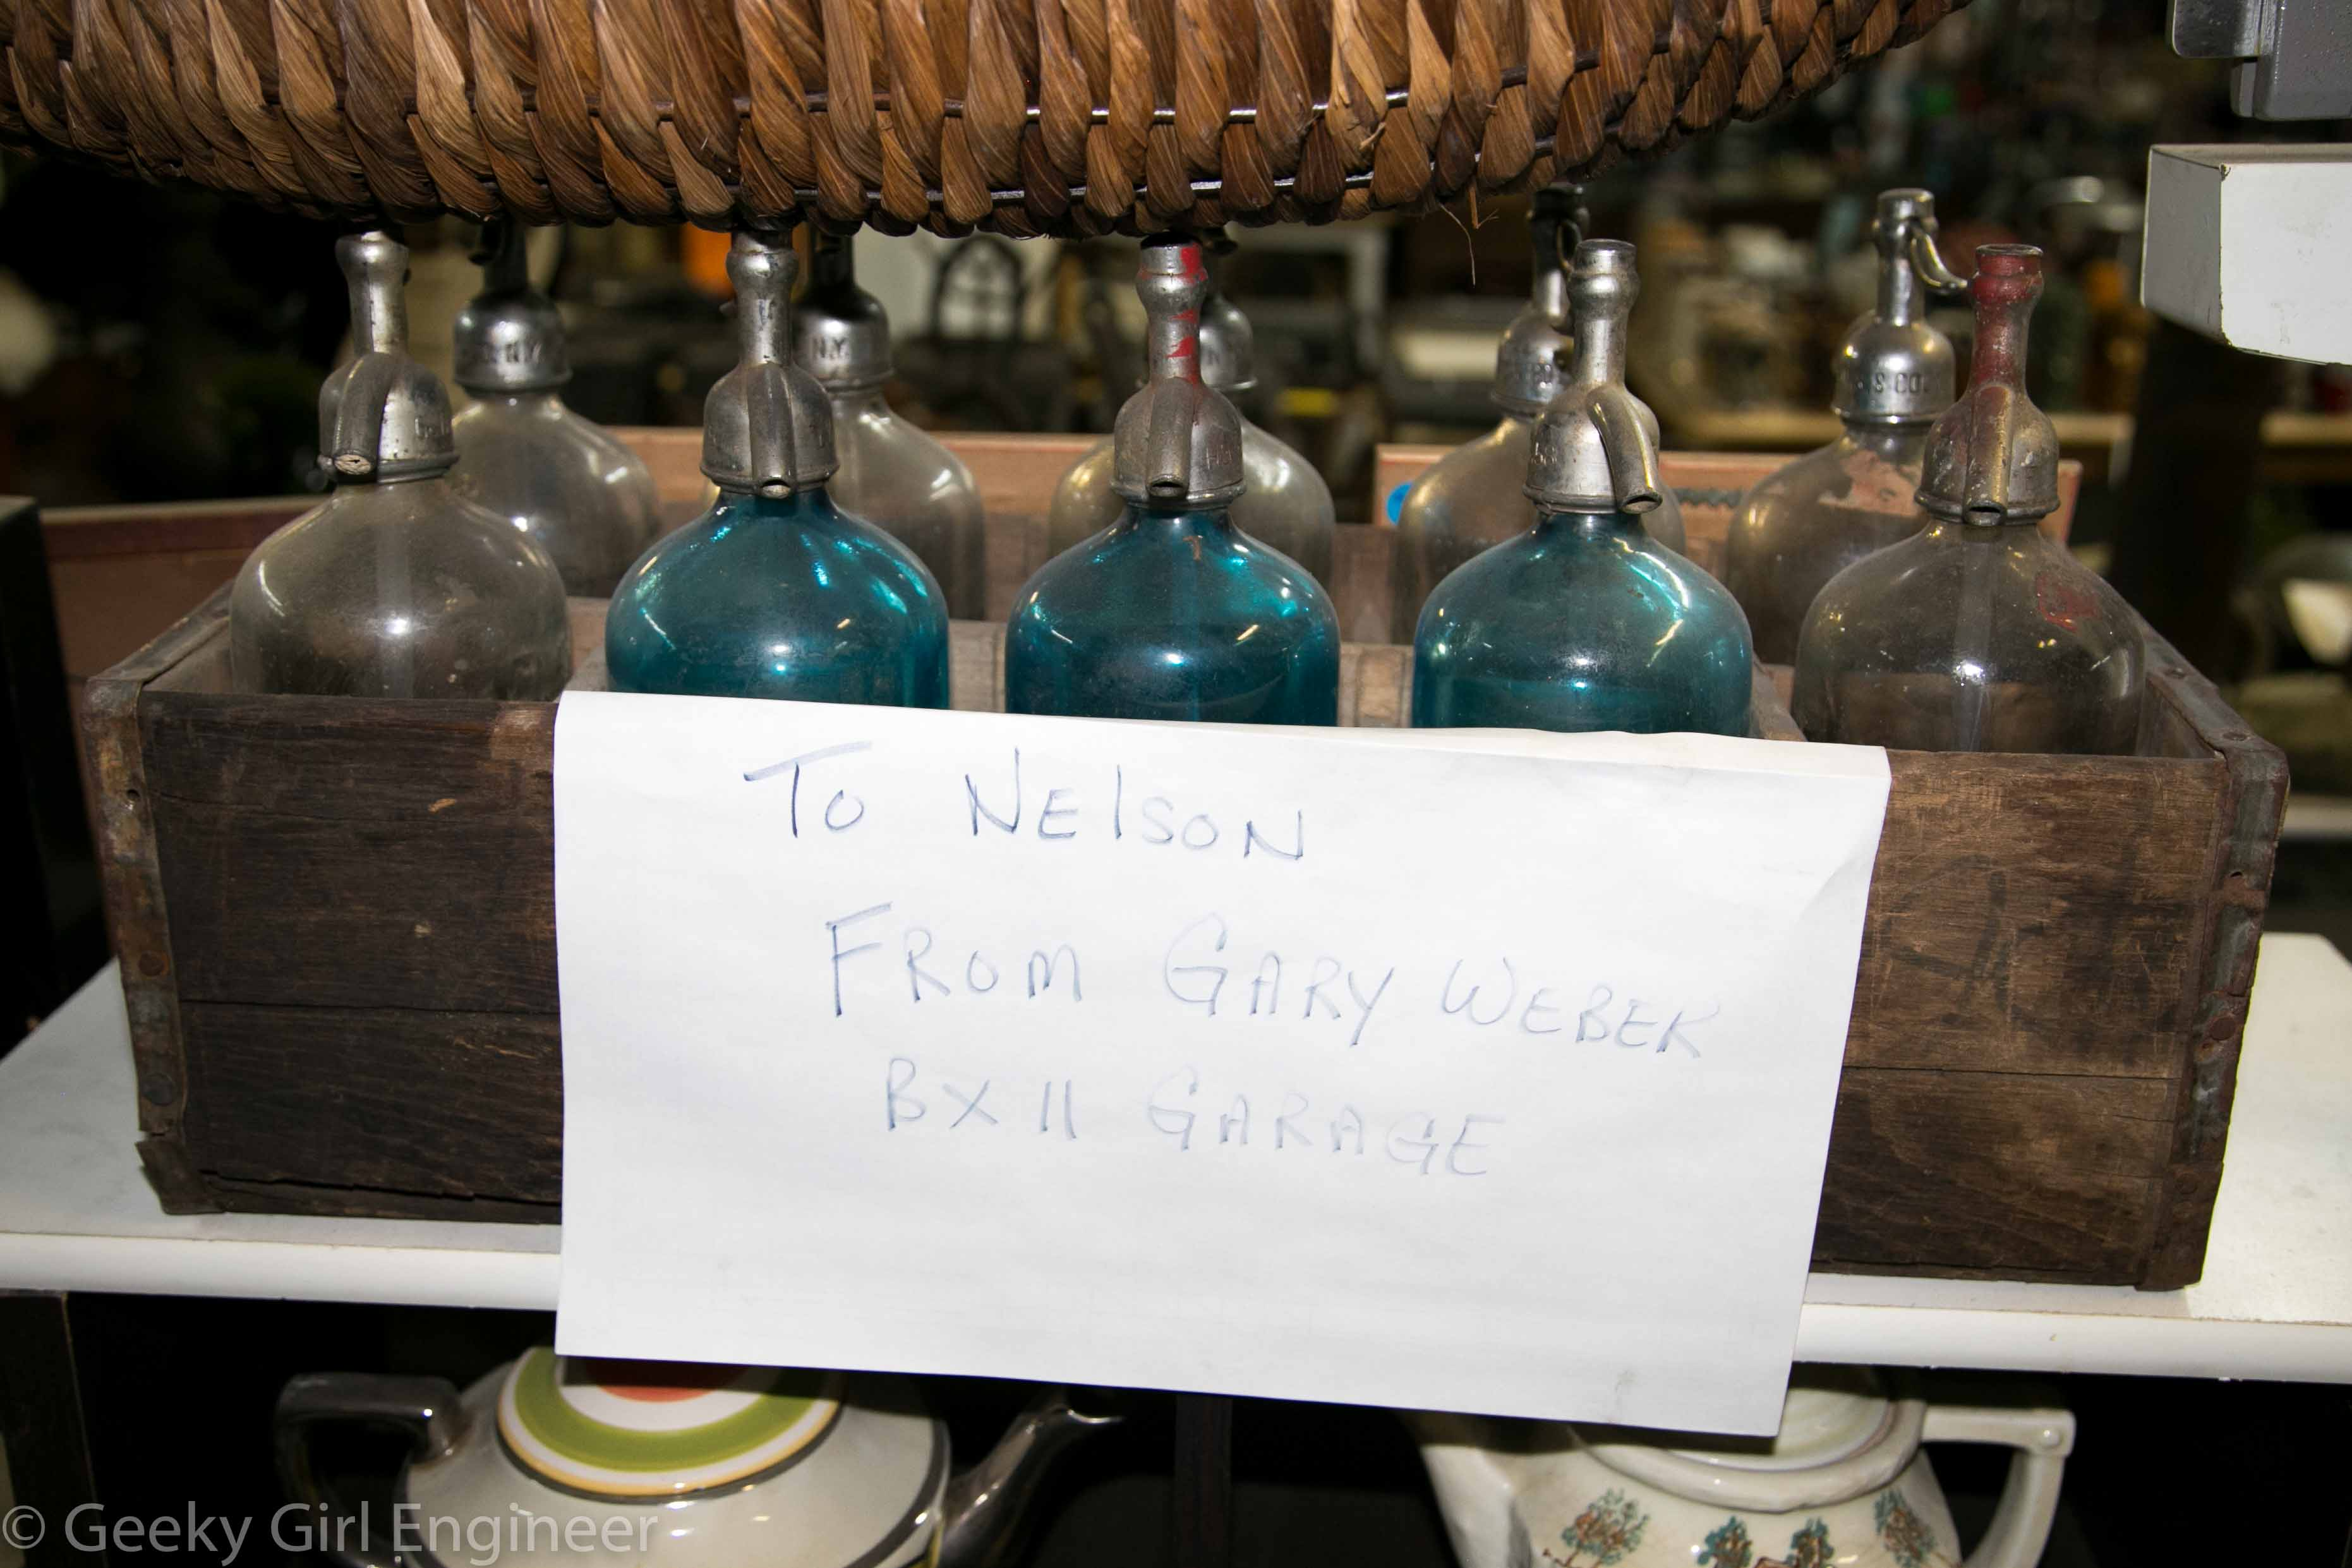 A set of old seltzer bottles donated by another sanitation worker